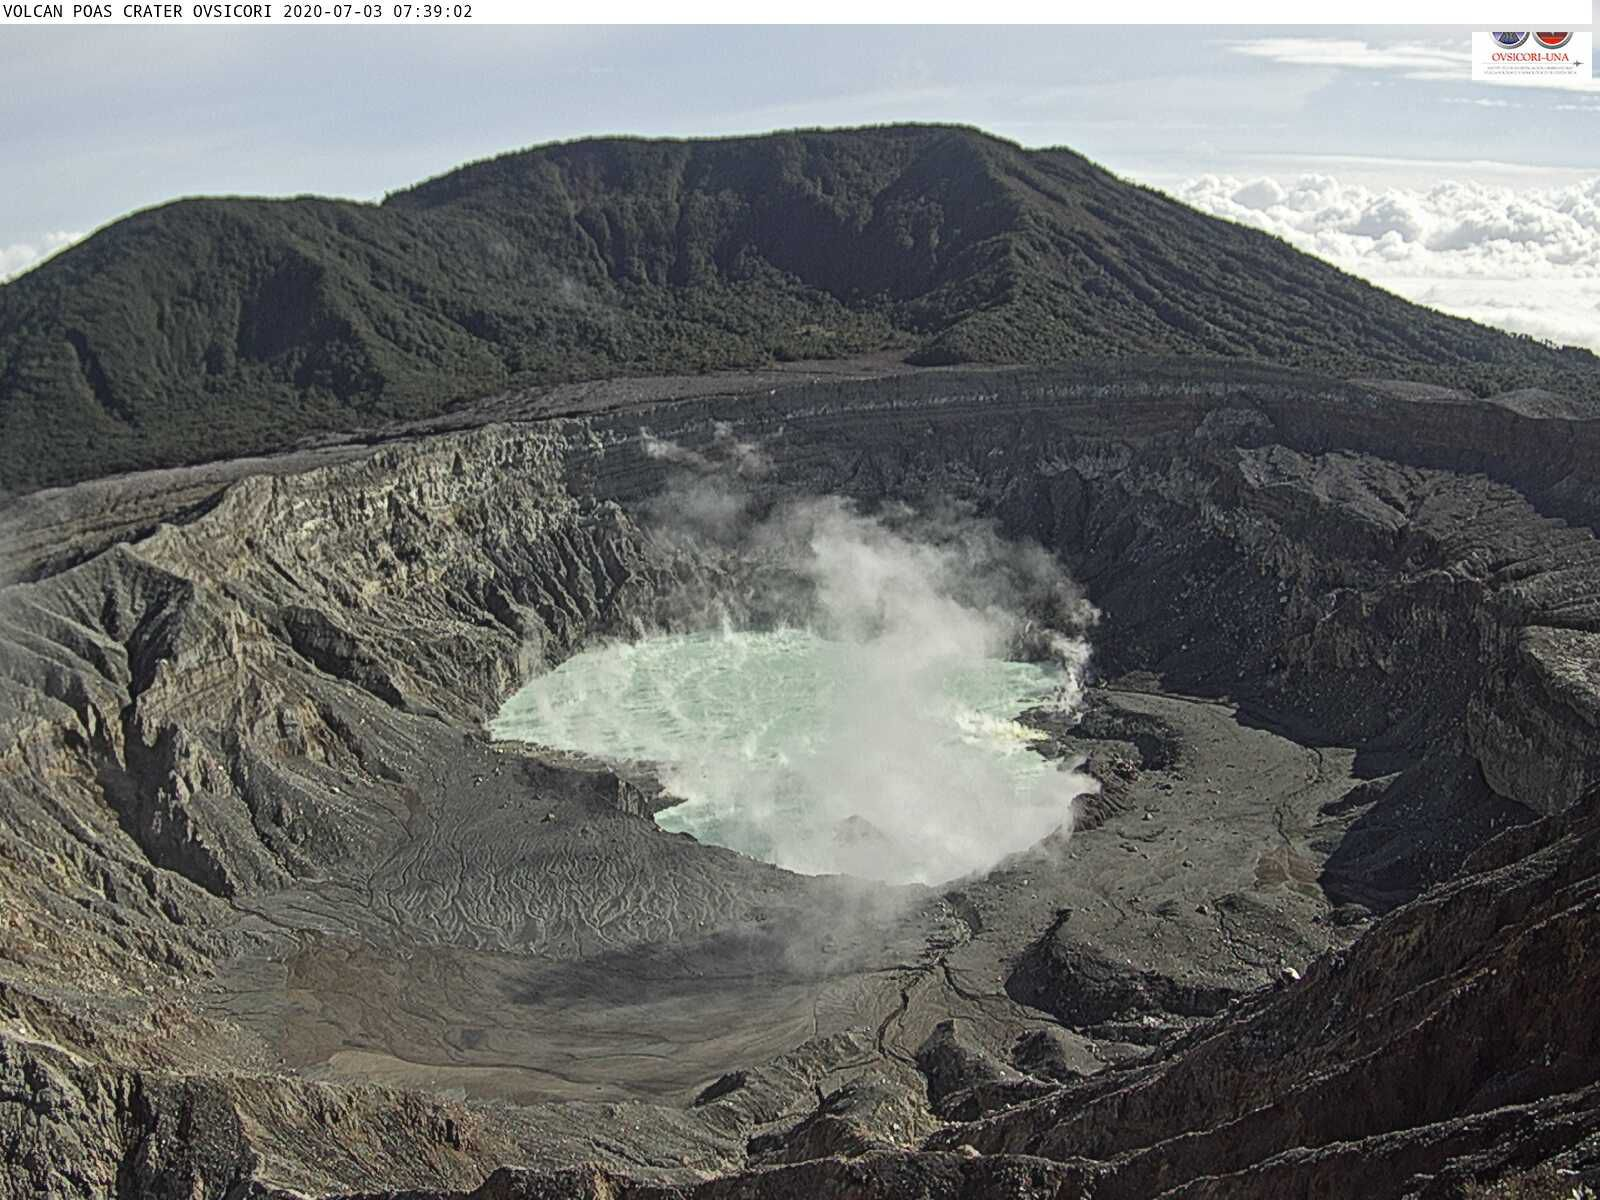 Poas - 03.07.2020 / 07:39 - the acid lake is agitated and topped with fumaroles - Ovsicori webcam